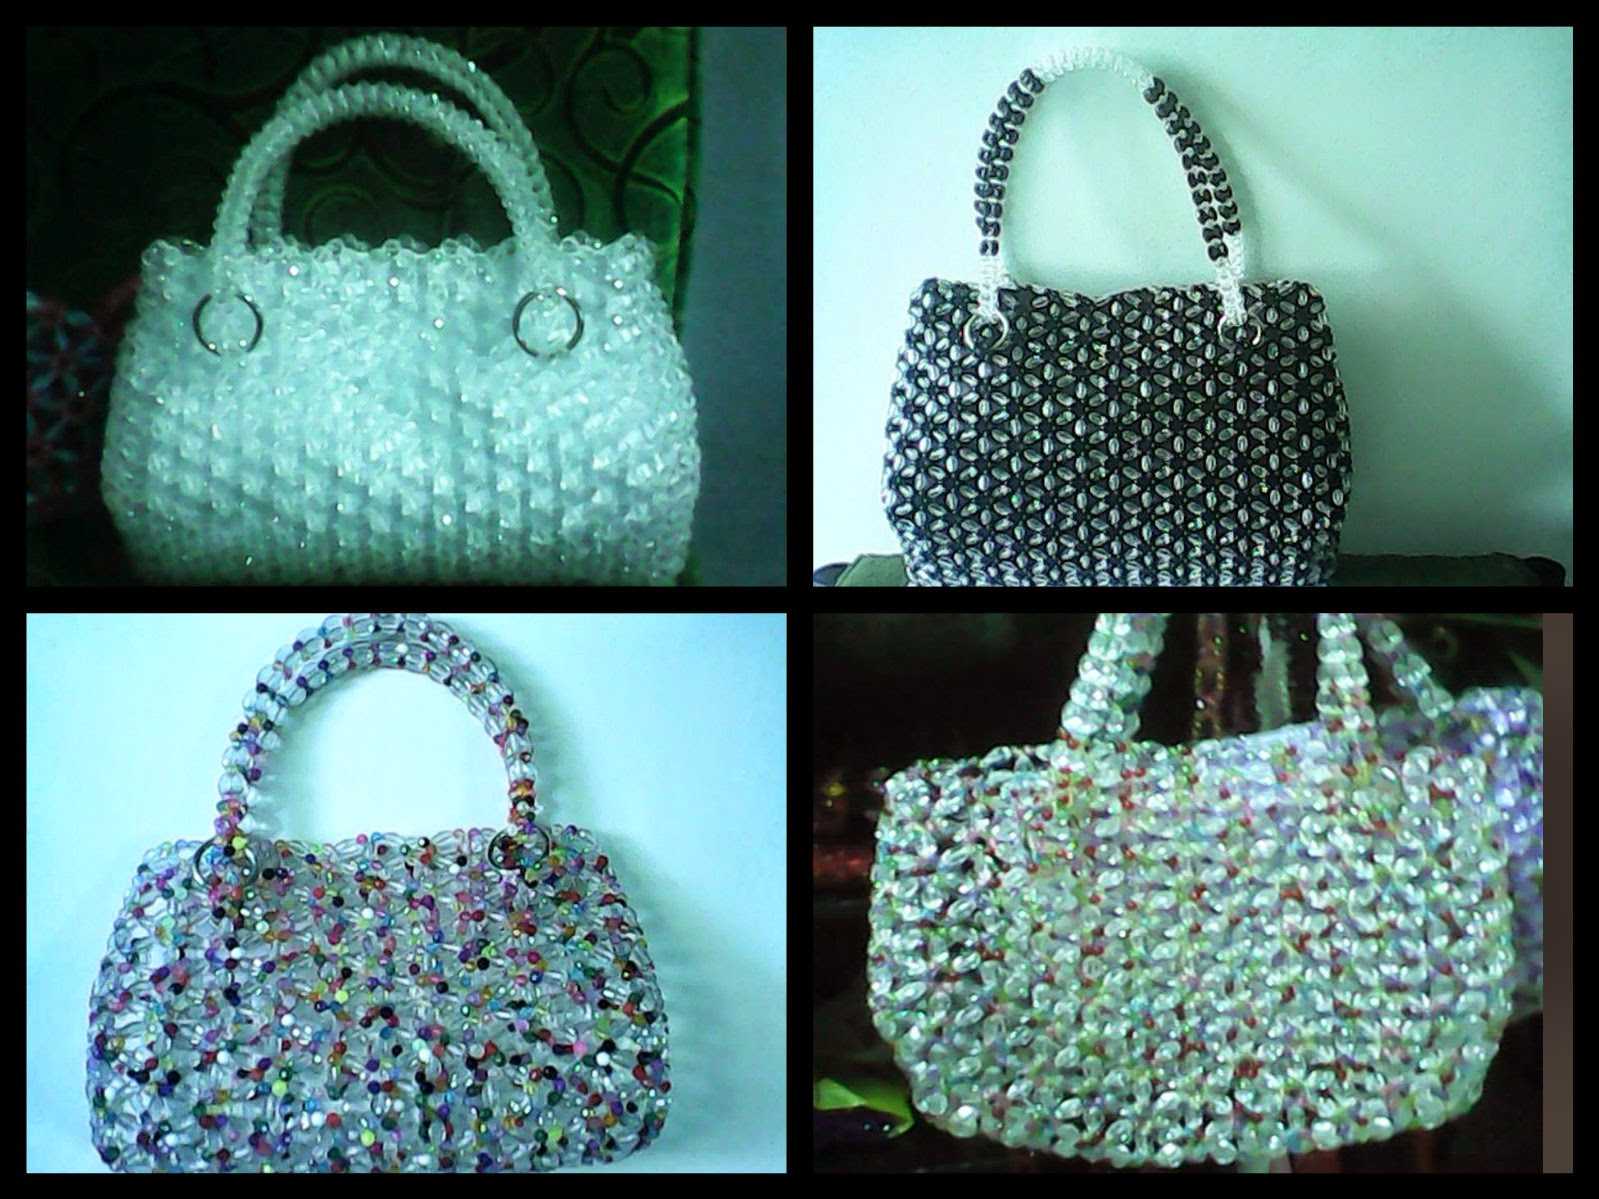 "<img src=""beads.gif"" alt=""different designs of bags made of beads "" />"